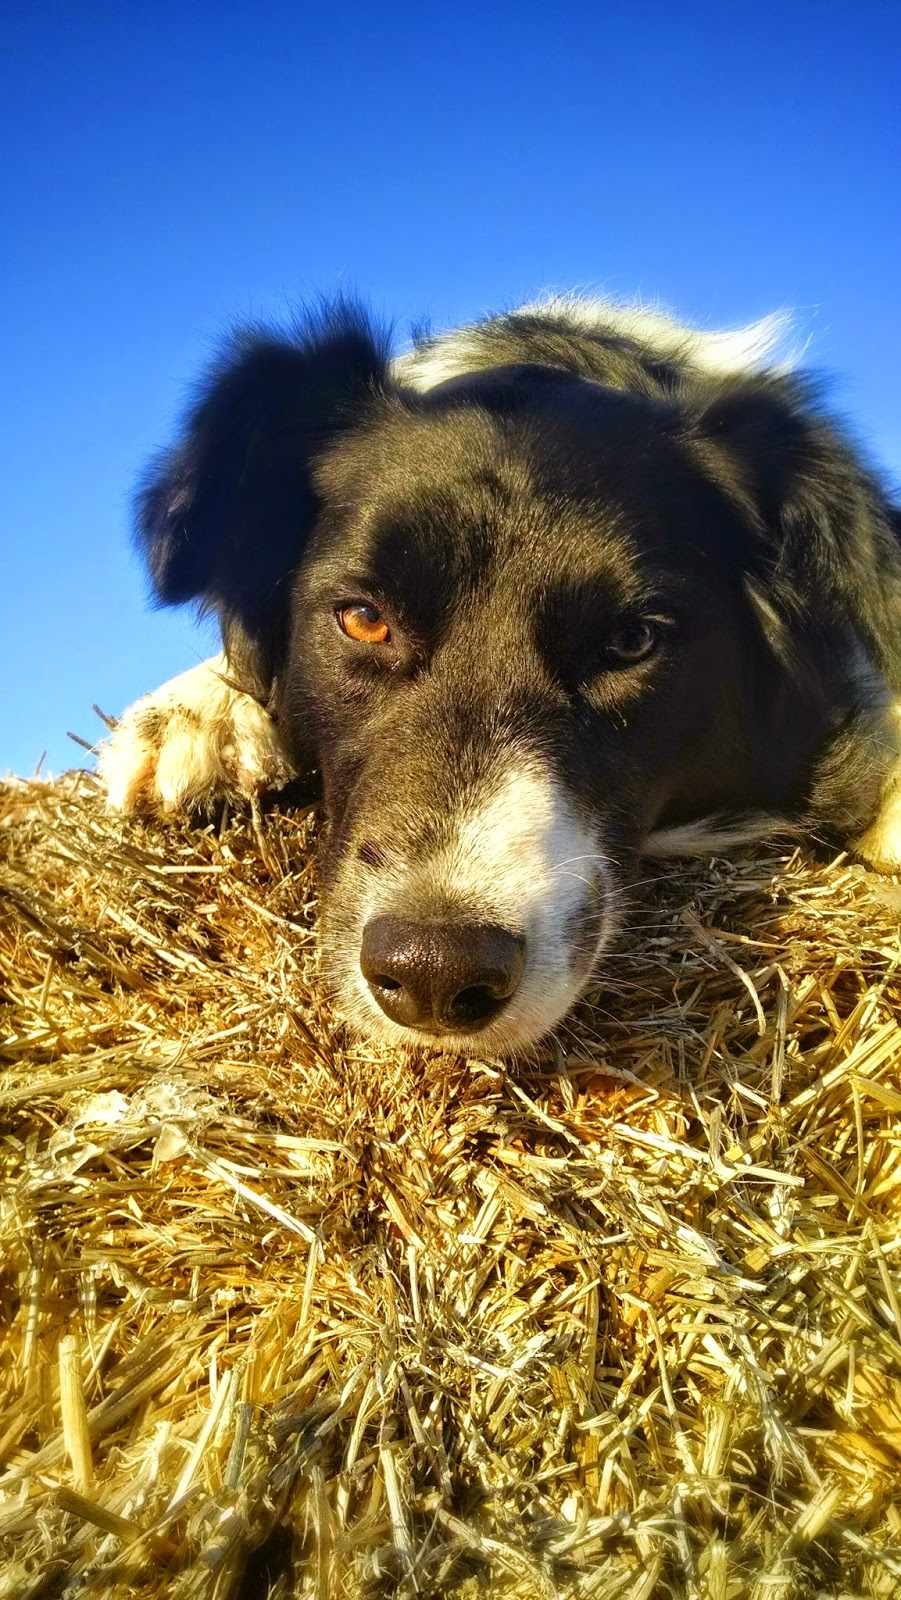 Ali, a rescue dog, border collie breed